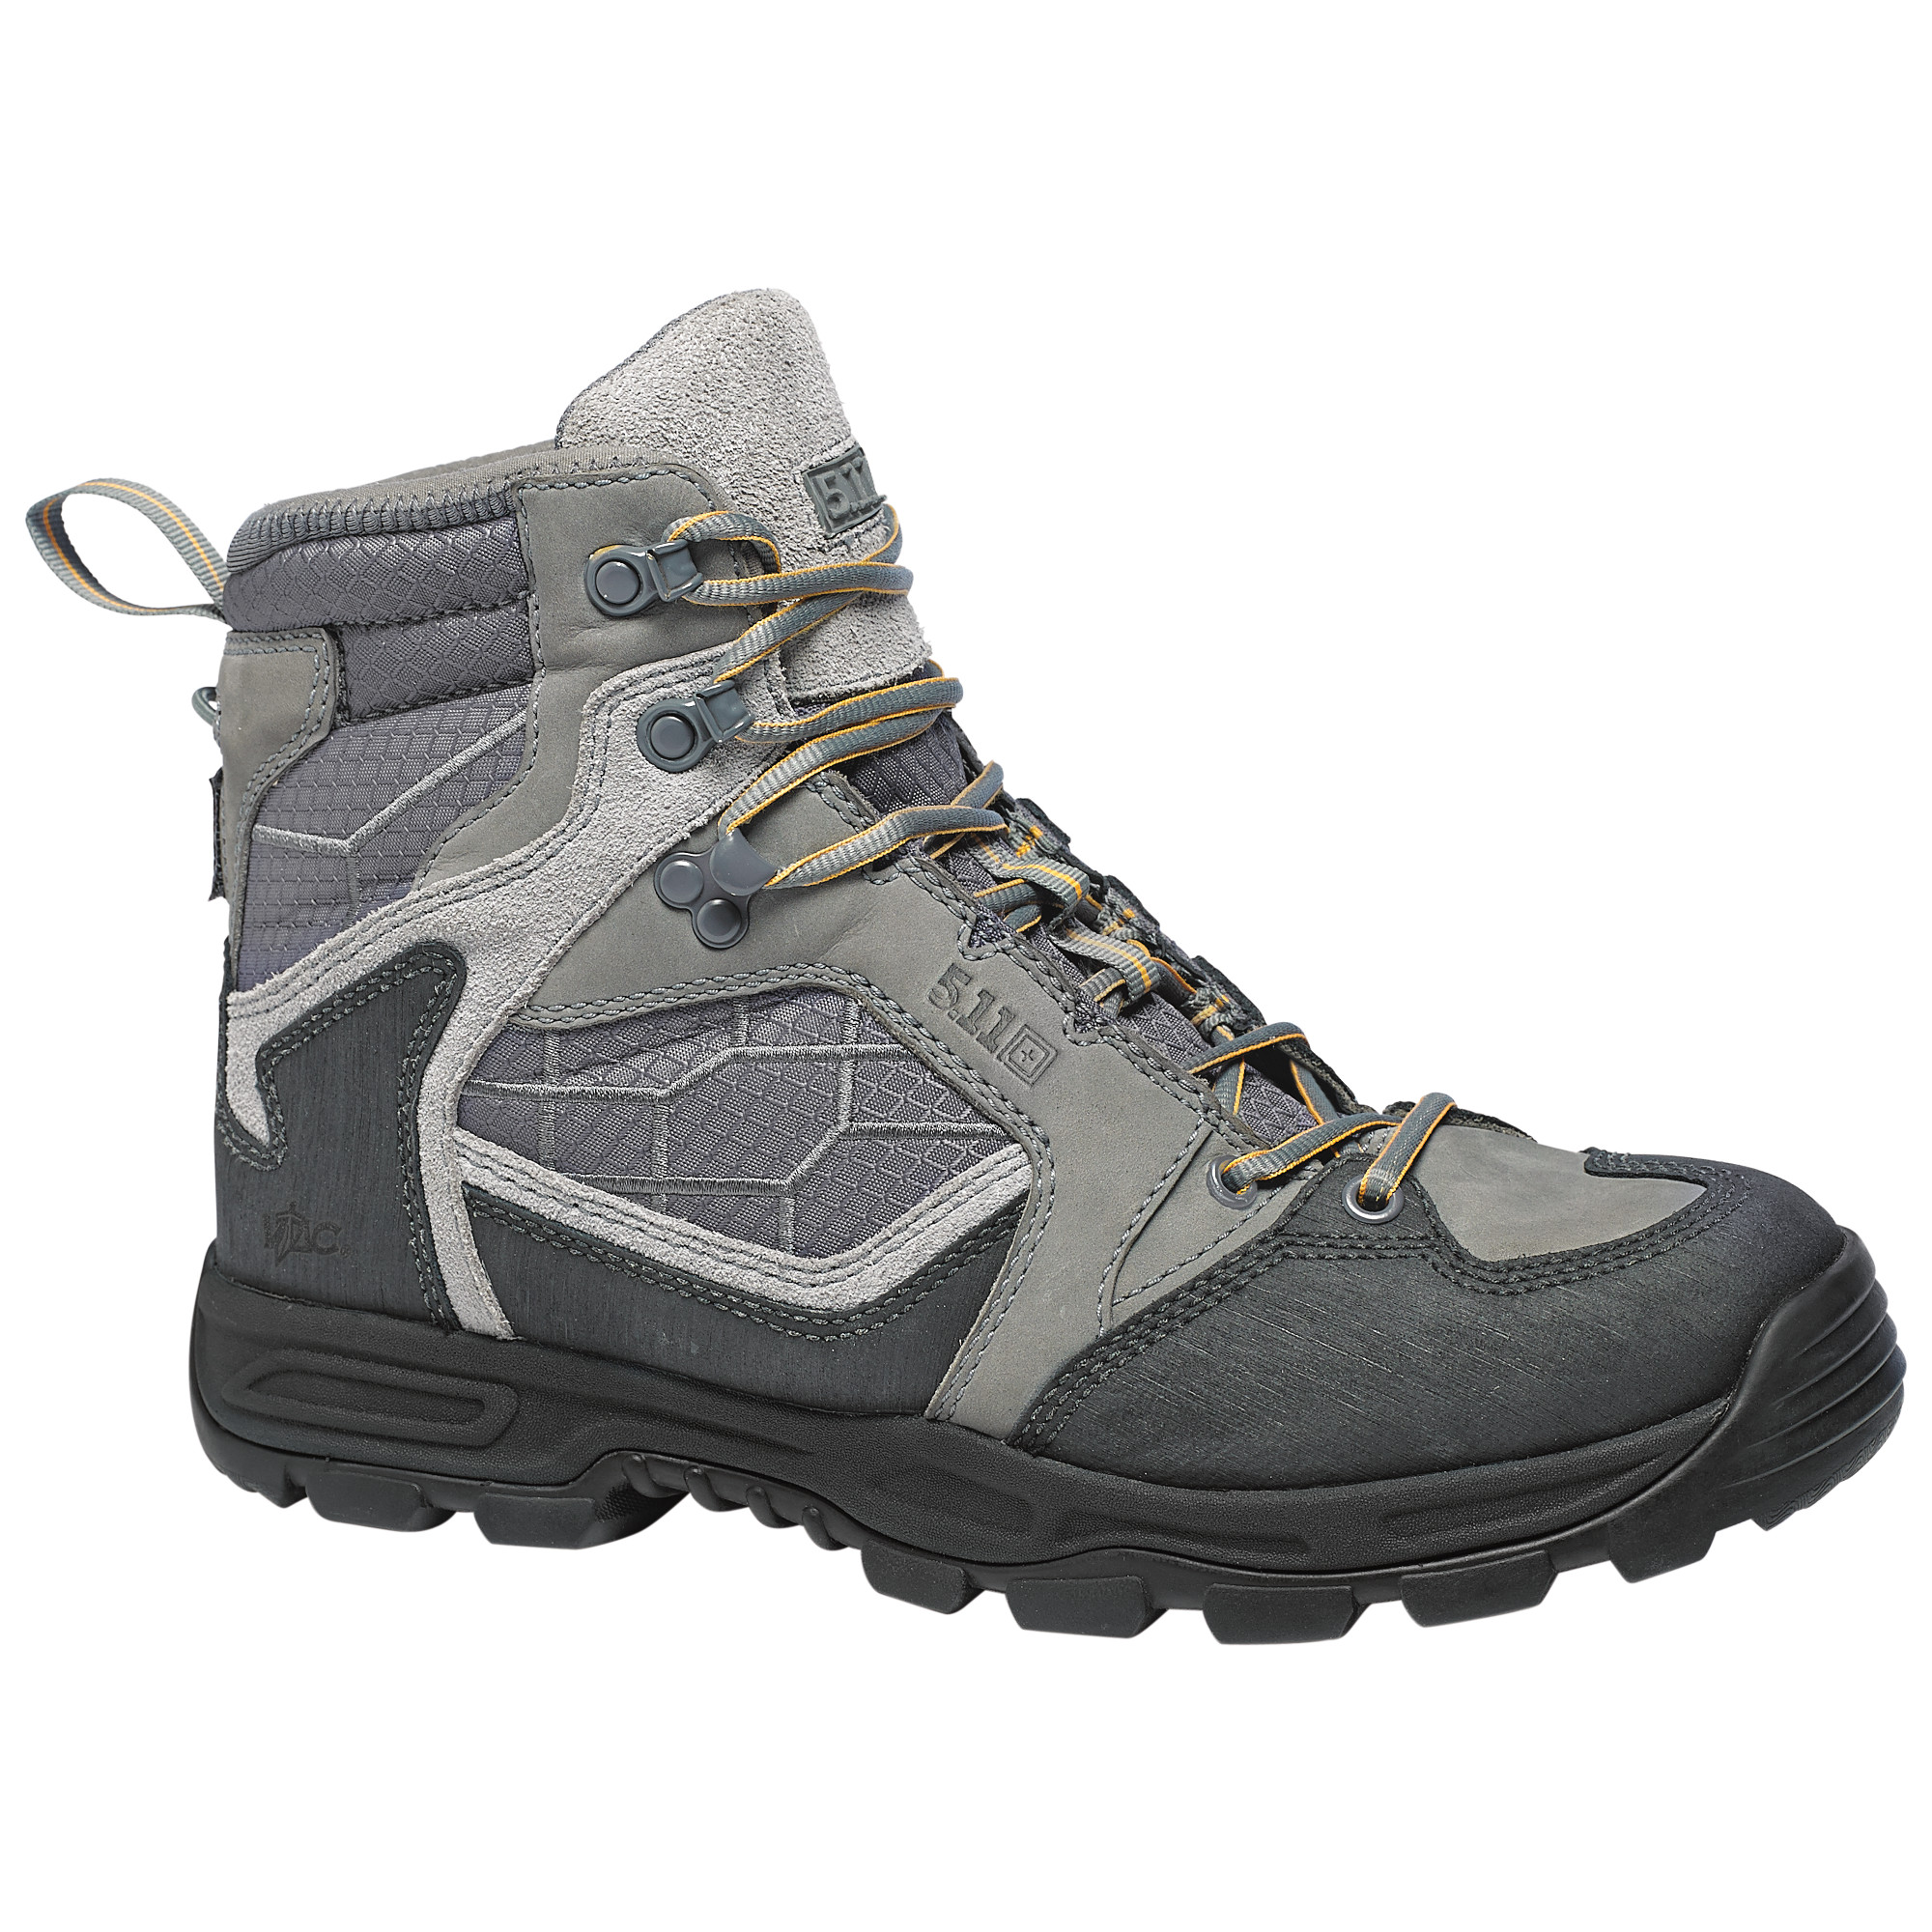 5.11 XPRT 2.0 Tactical Boot 12221